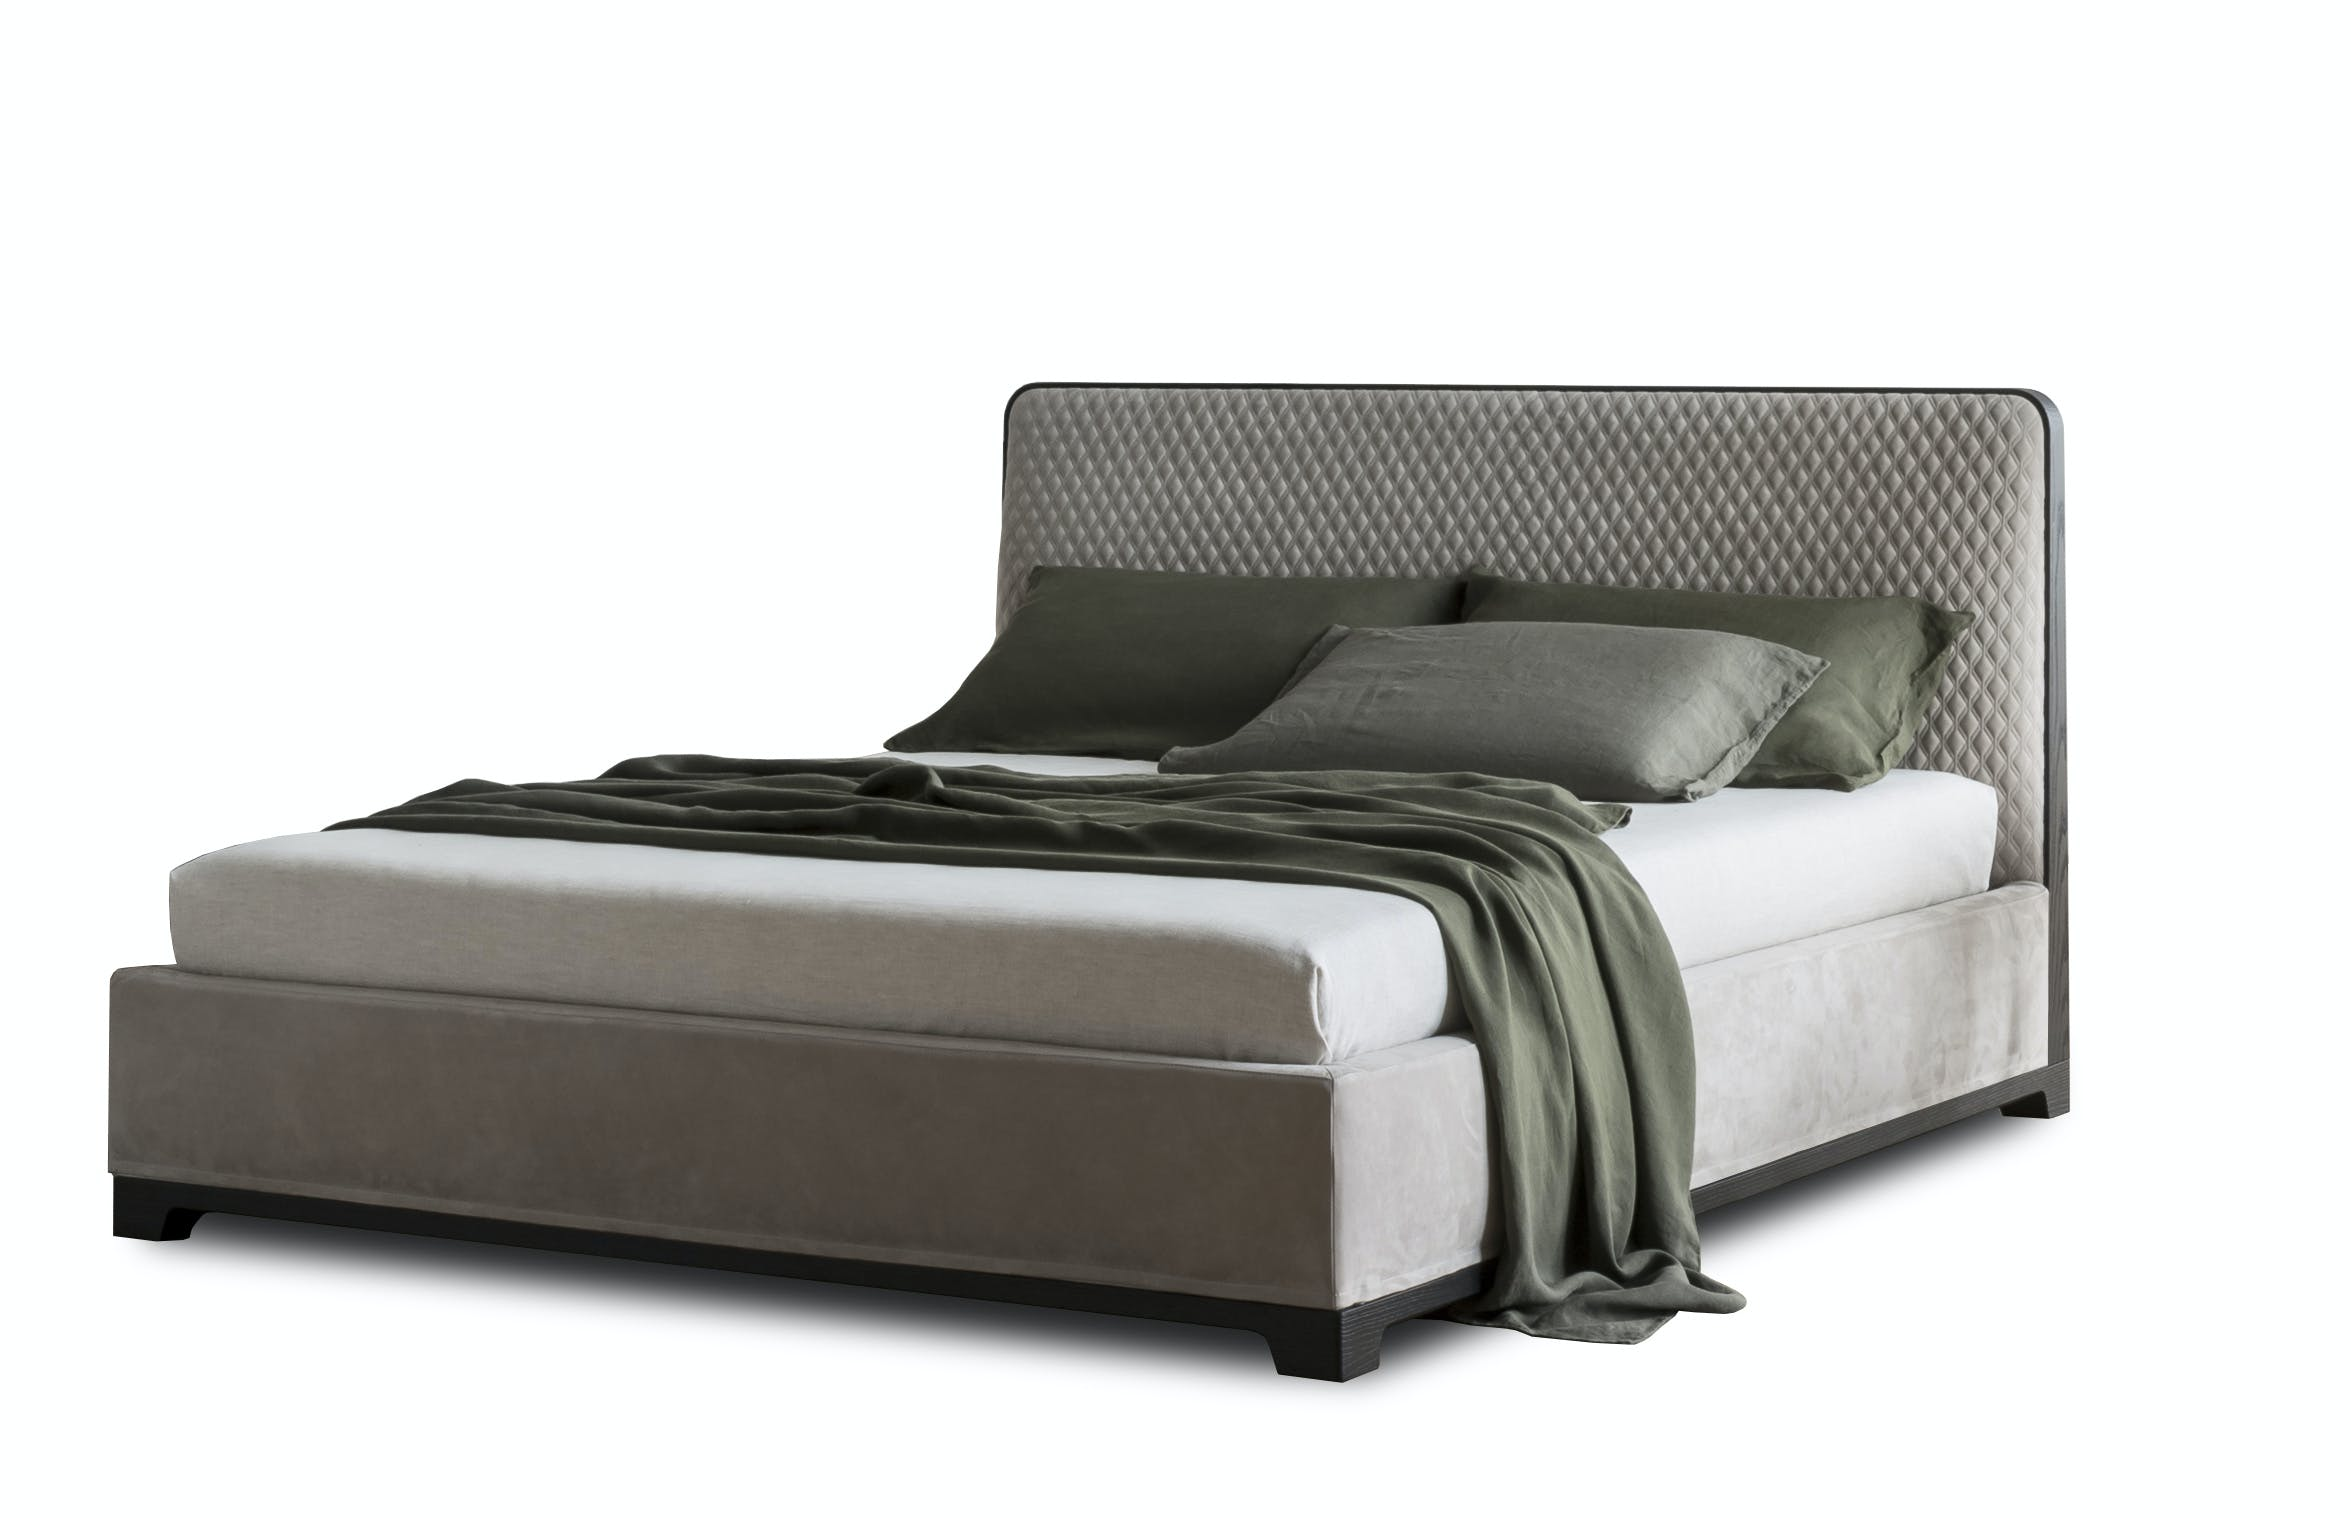 Alivar Bali Bed Alivar Collection Shop Online